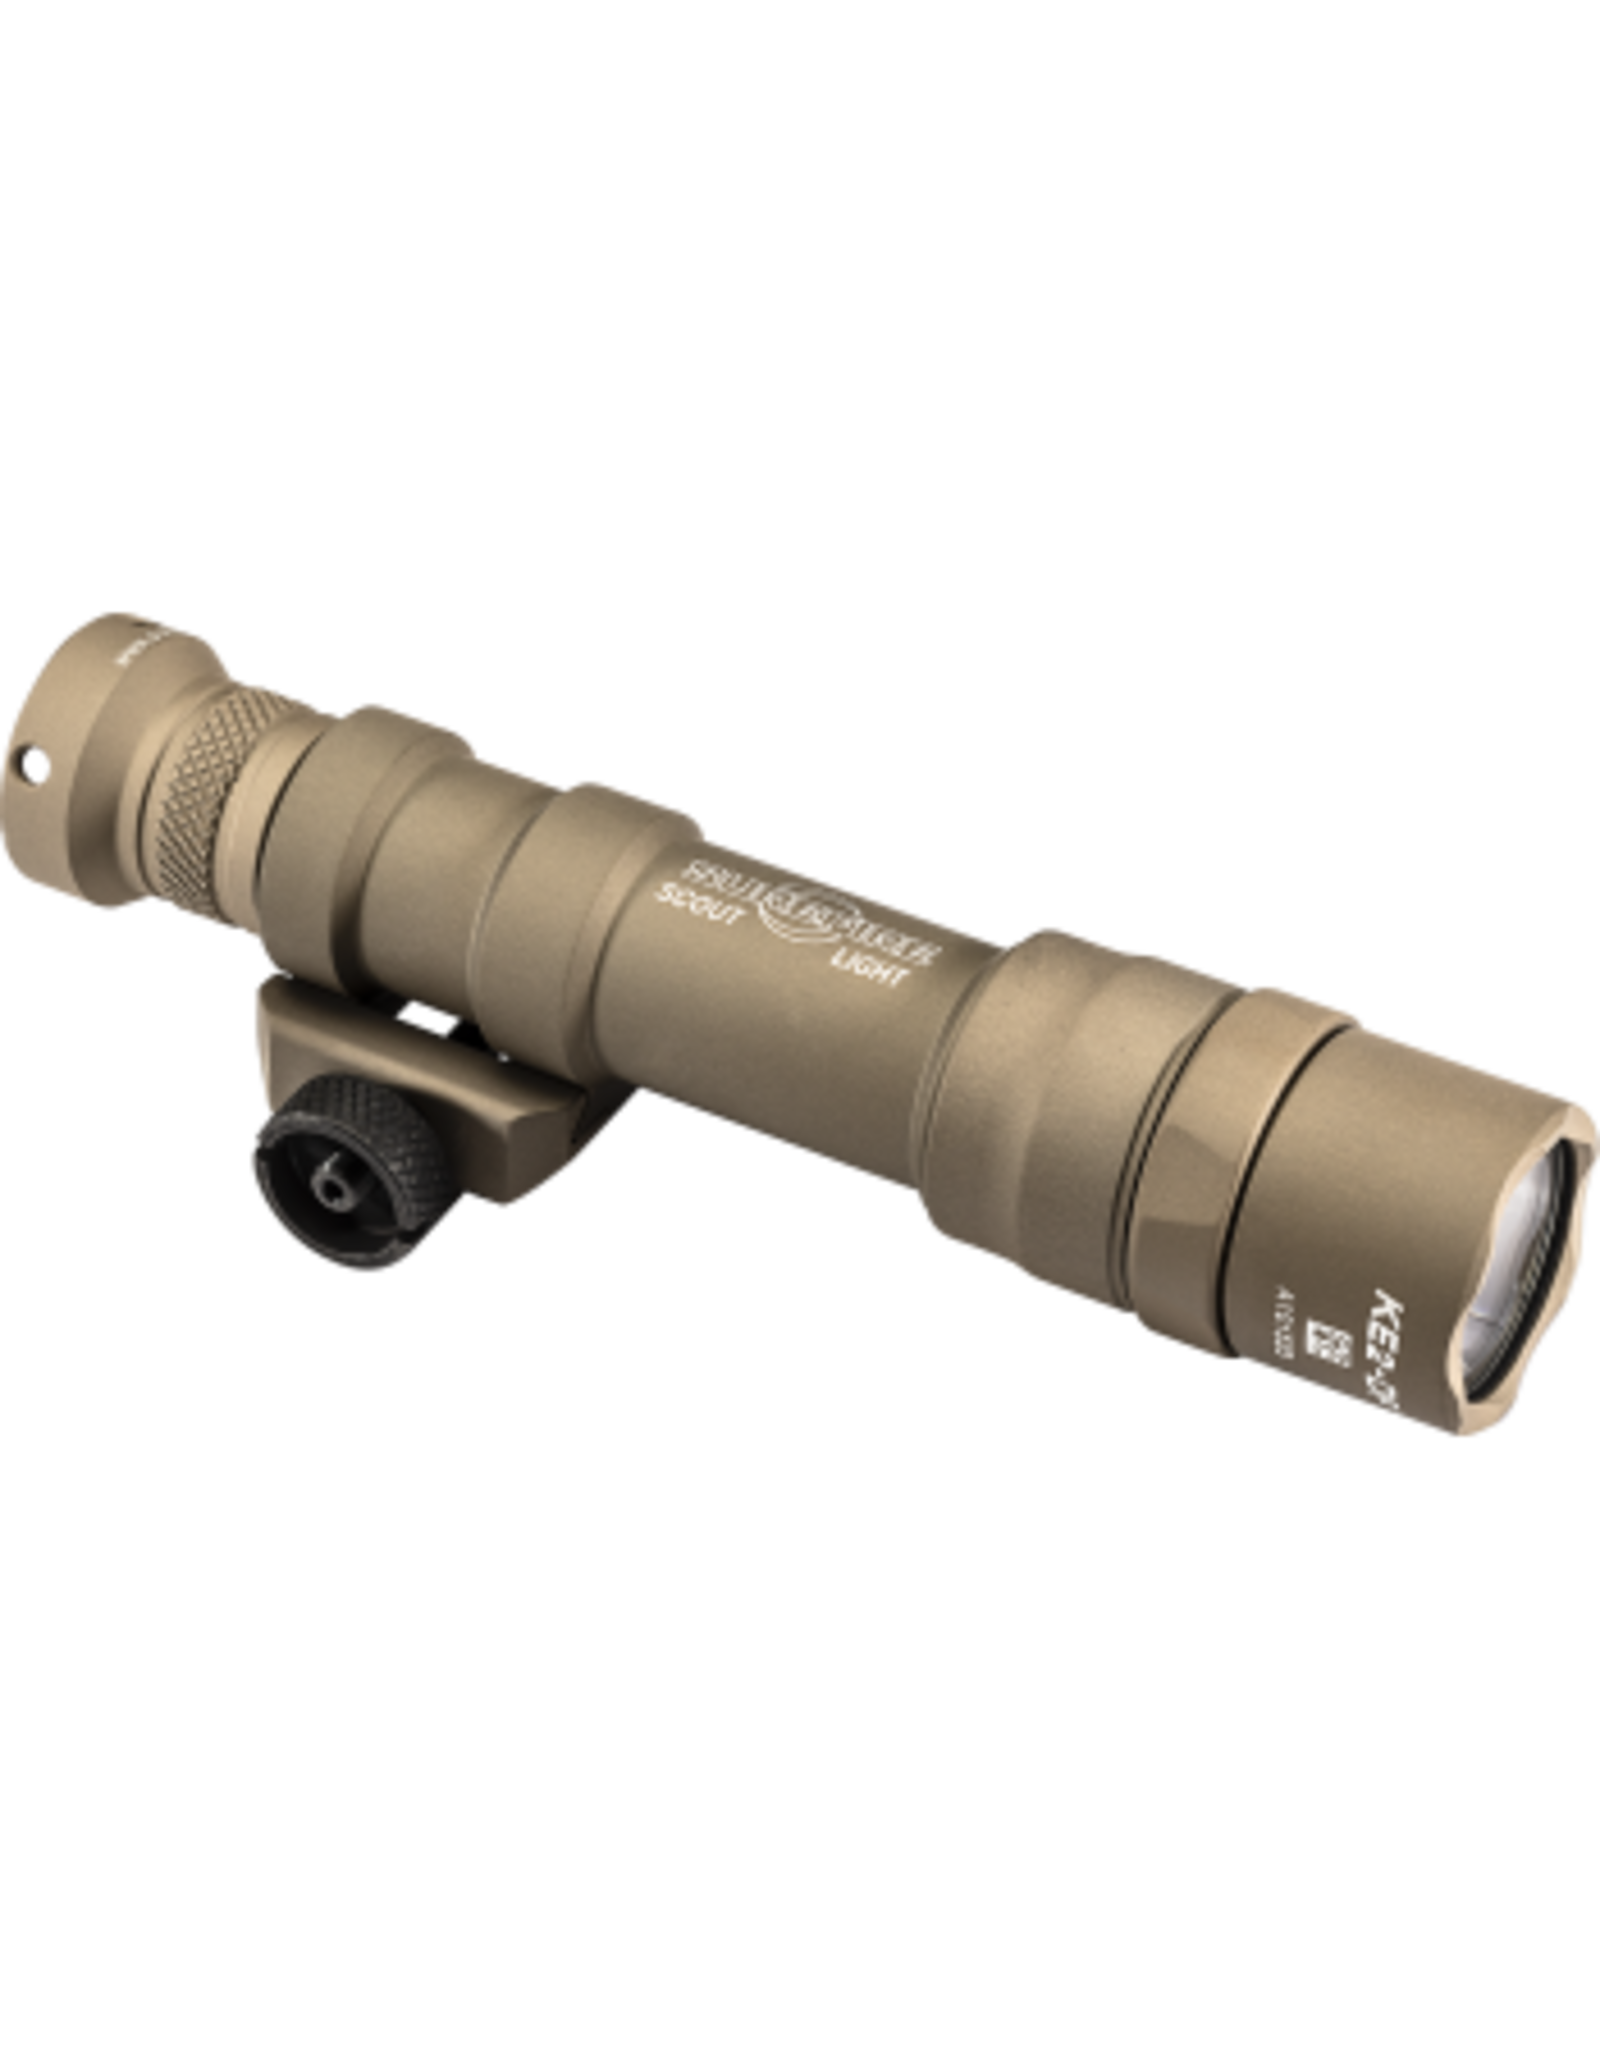 SUREFIRE SUREFIRE M600DF (DUAL FUEL) SCOUT LIGHT